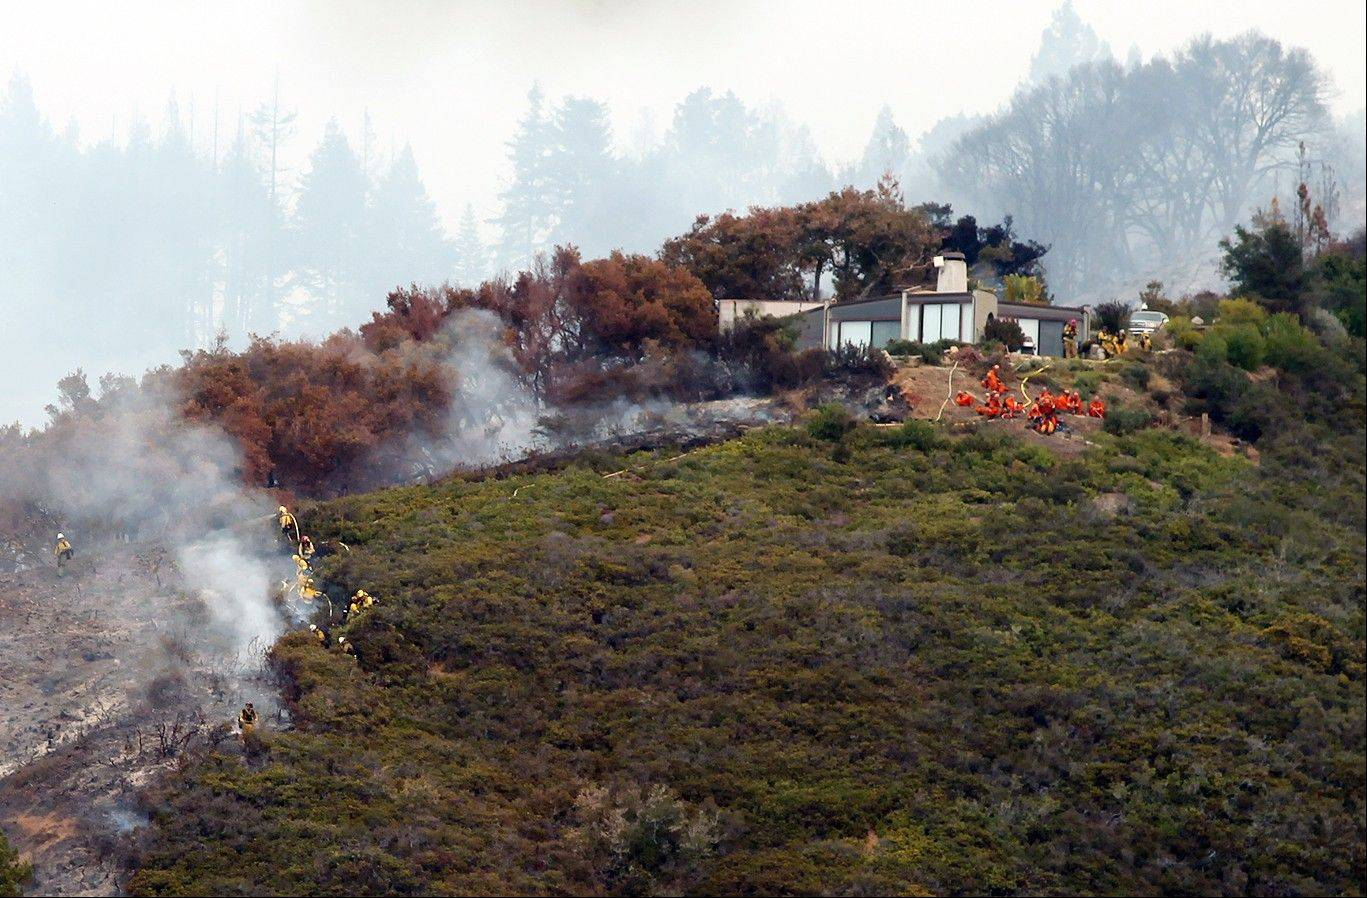 Fire crews work to contain the fire atop Pfeiffer Ridge, Monday, Dec. 16, 2013, in Big Sur, Calif. The wildfire burning Monday in the Big Sur area of California destroyed at least 15 homes and forced about 100 people to evacuate as it chewed through dry vegetation on its way toward the ocean. (